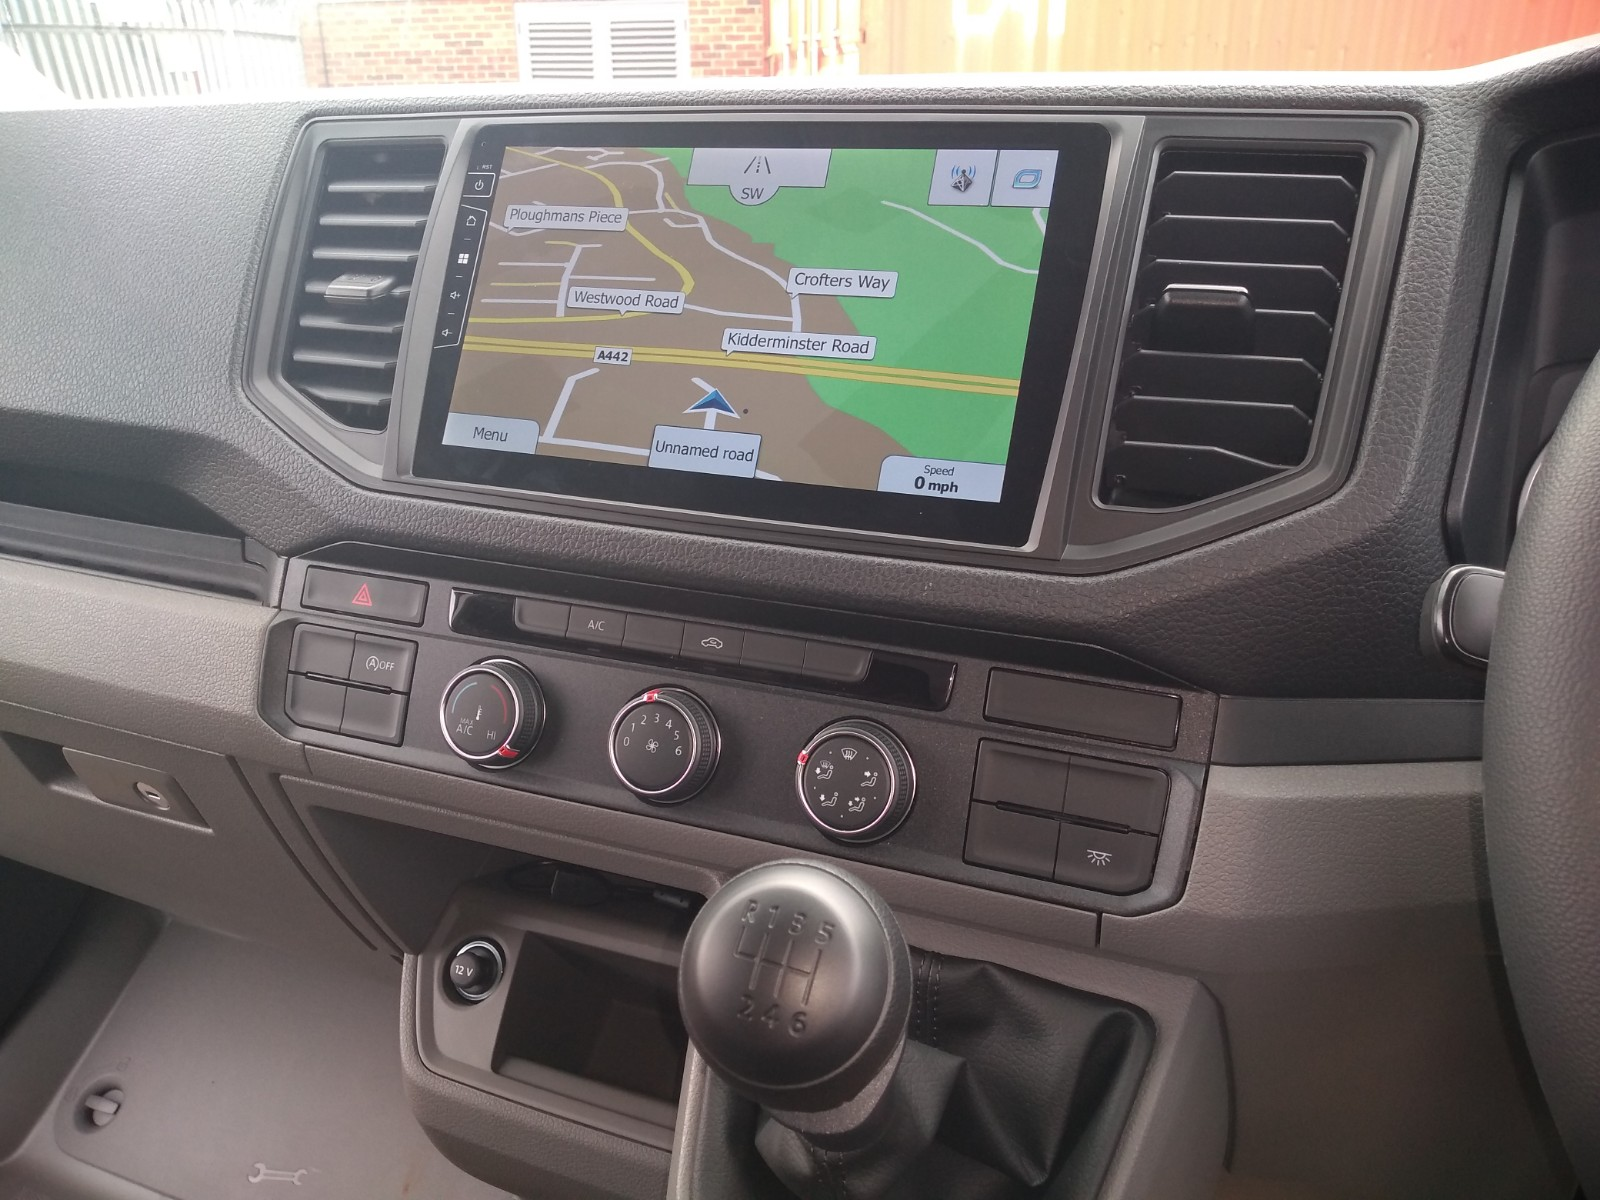 Navigatie VW Crafter vanaf 2017 touch Screen parrot carkit apple carplay android auto TMC